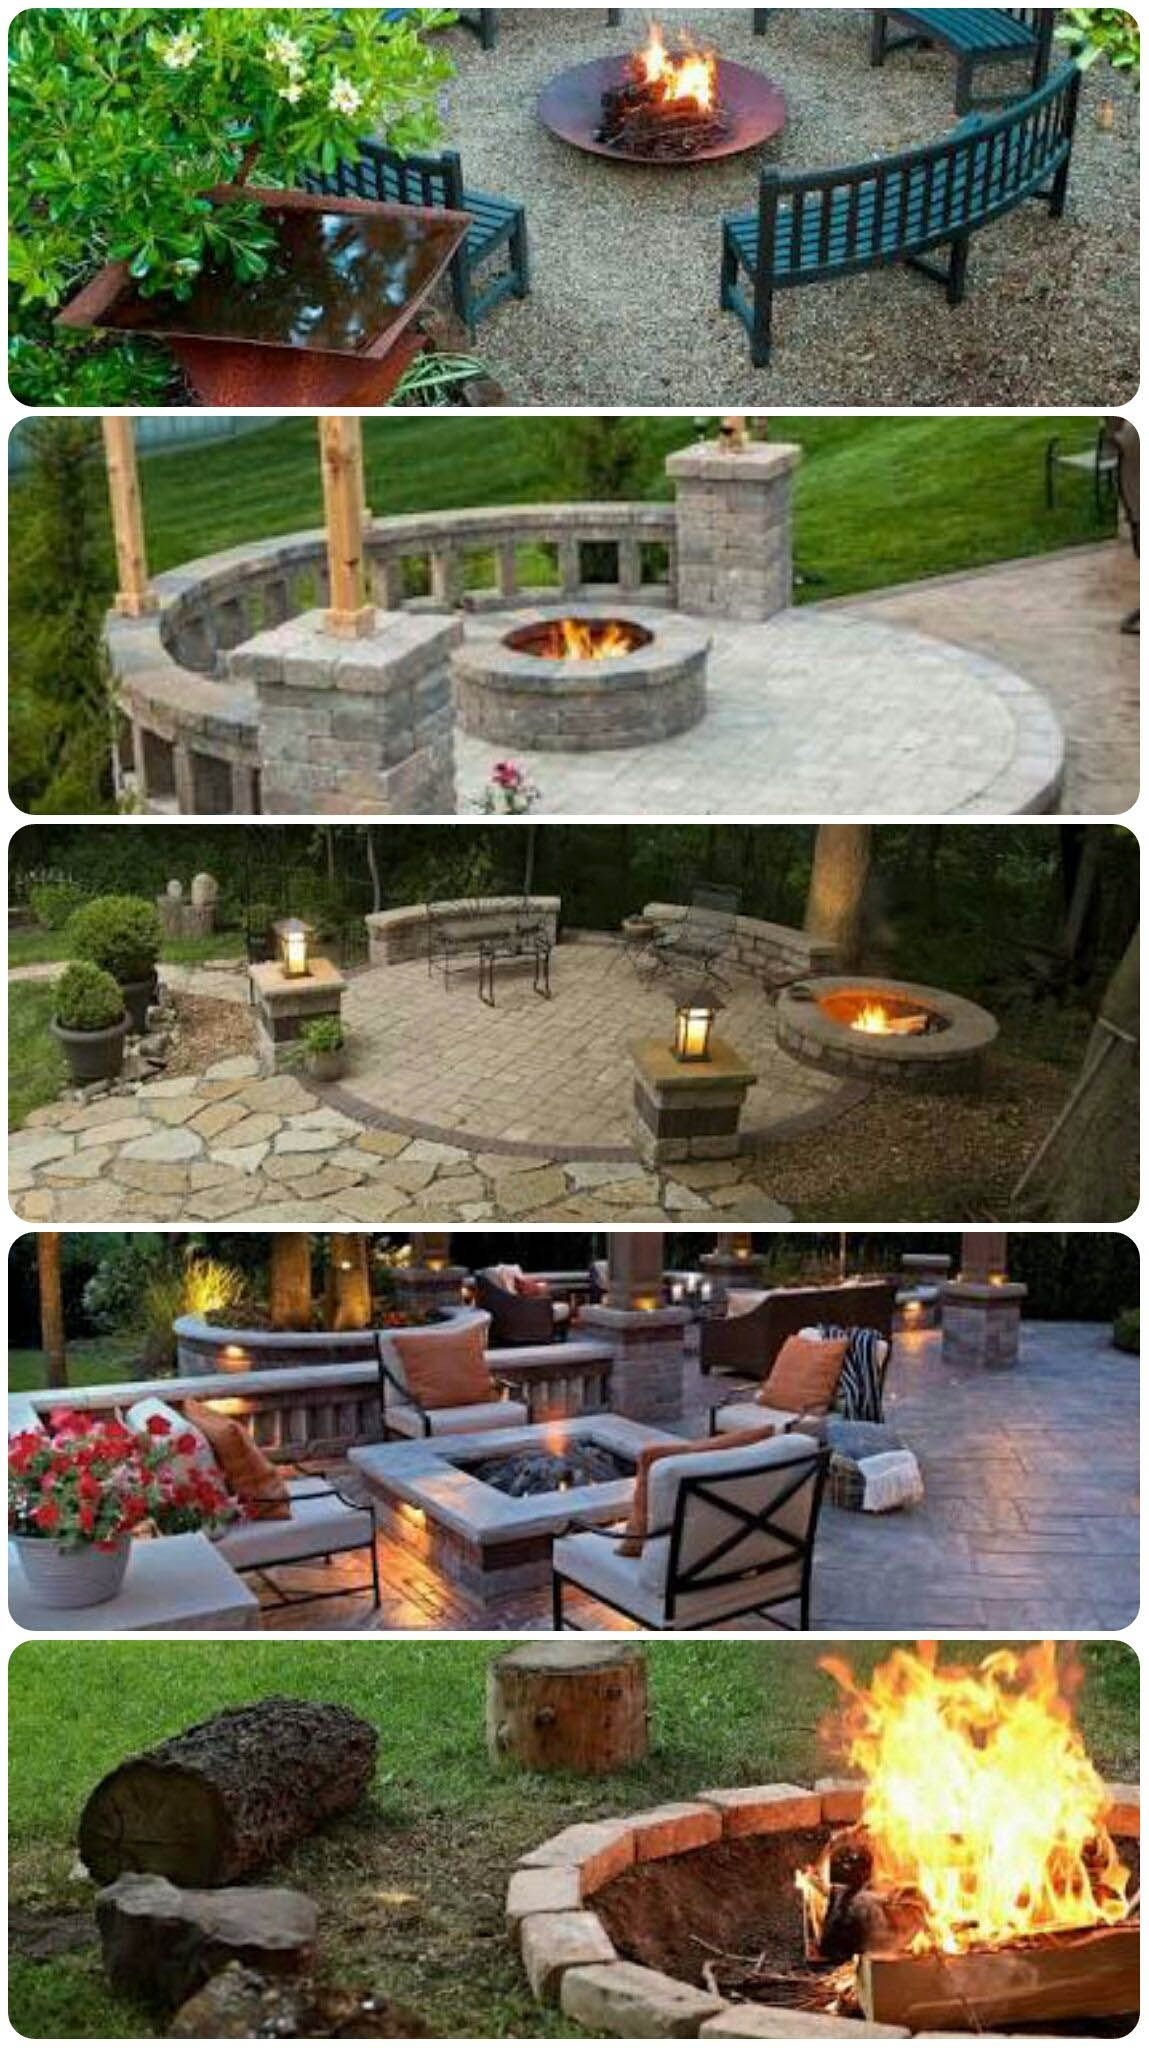 Finest Outdoor Fire Pit Ireland Only In Homesable Design Fire